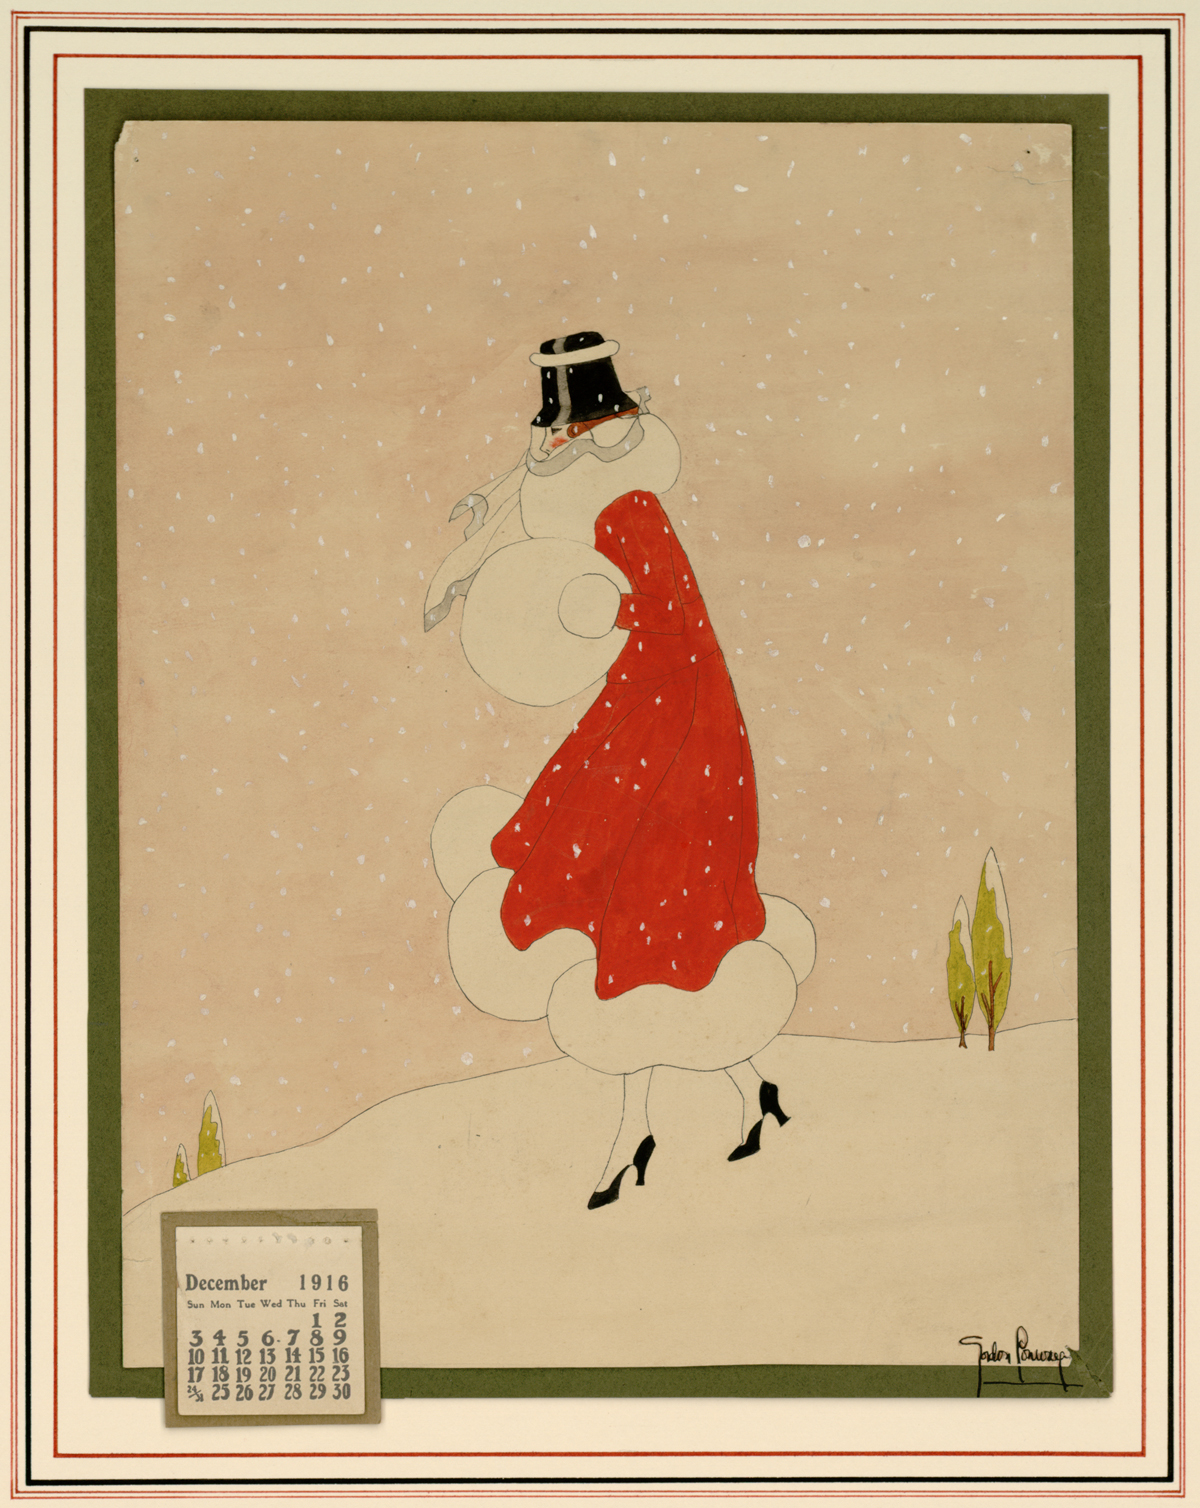 Gordon Conway. December 1916 calendar [woman in red coat during winter].